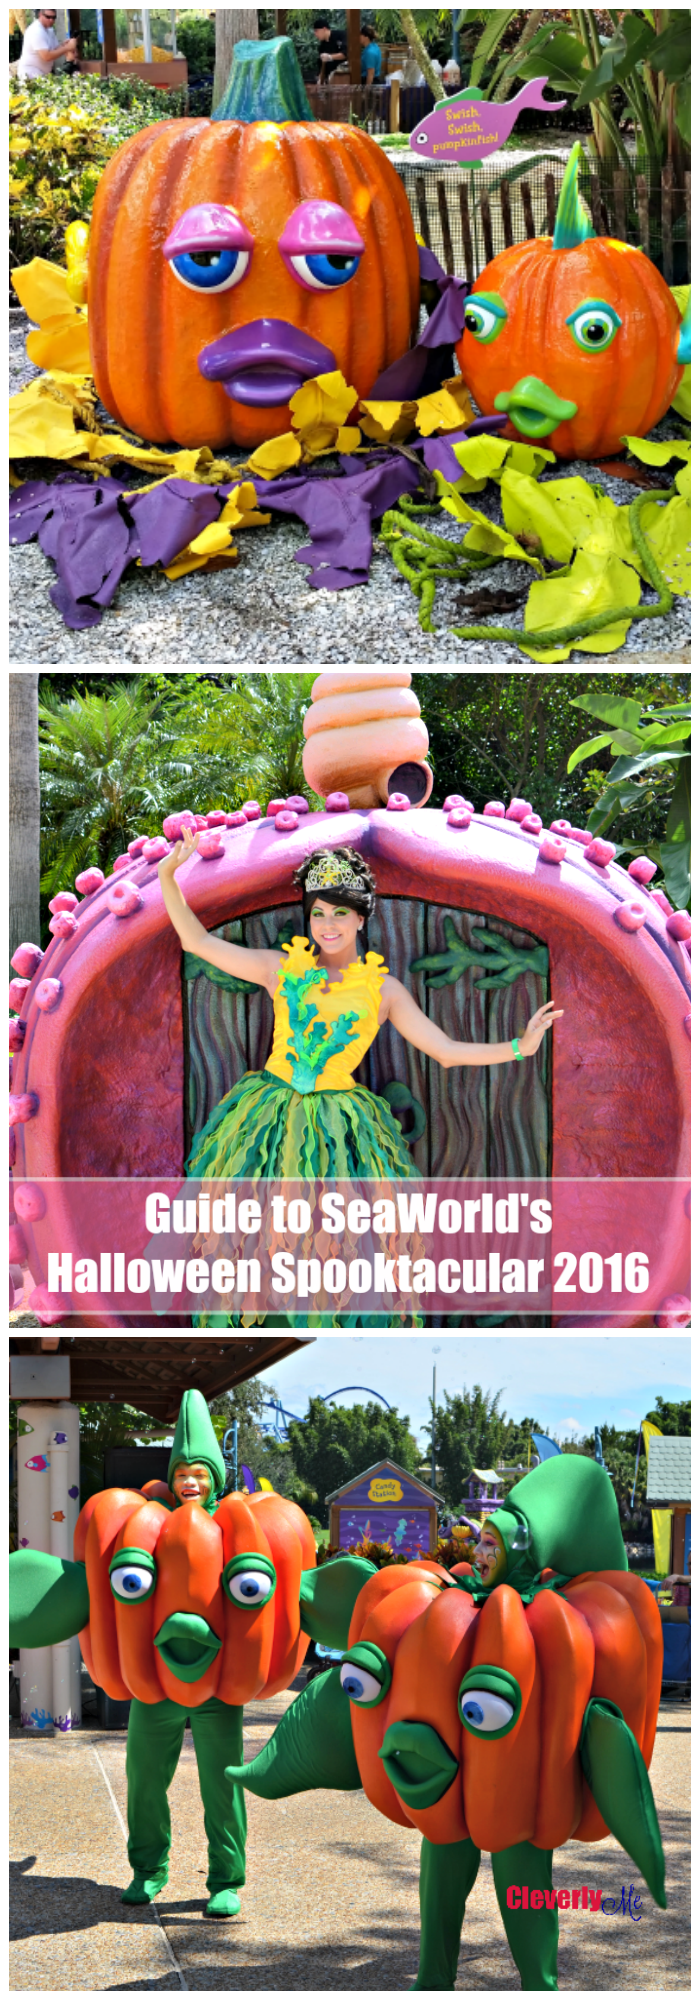 Guide to SeaWorld's Halloween Spooktacular 2016 . More at CleverlyMe.com